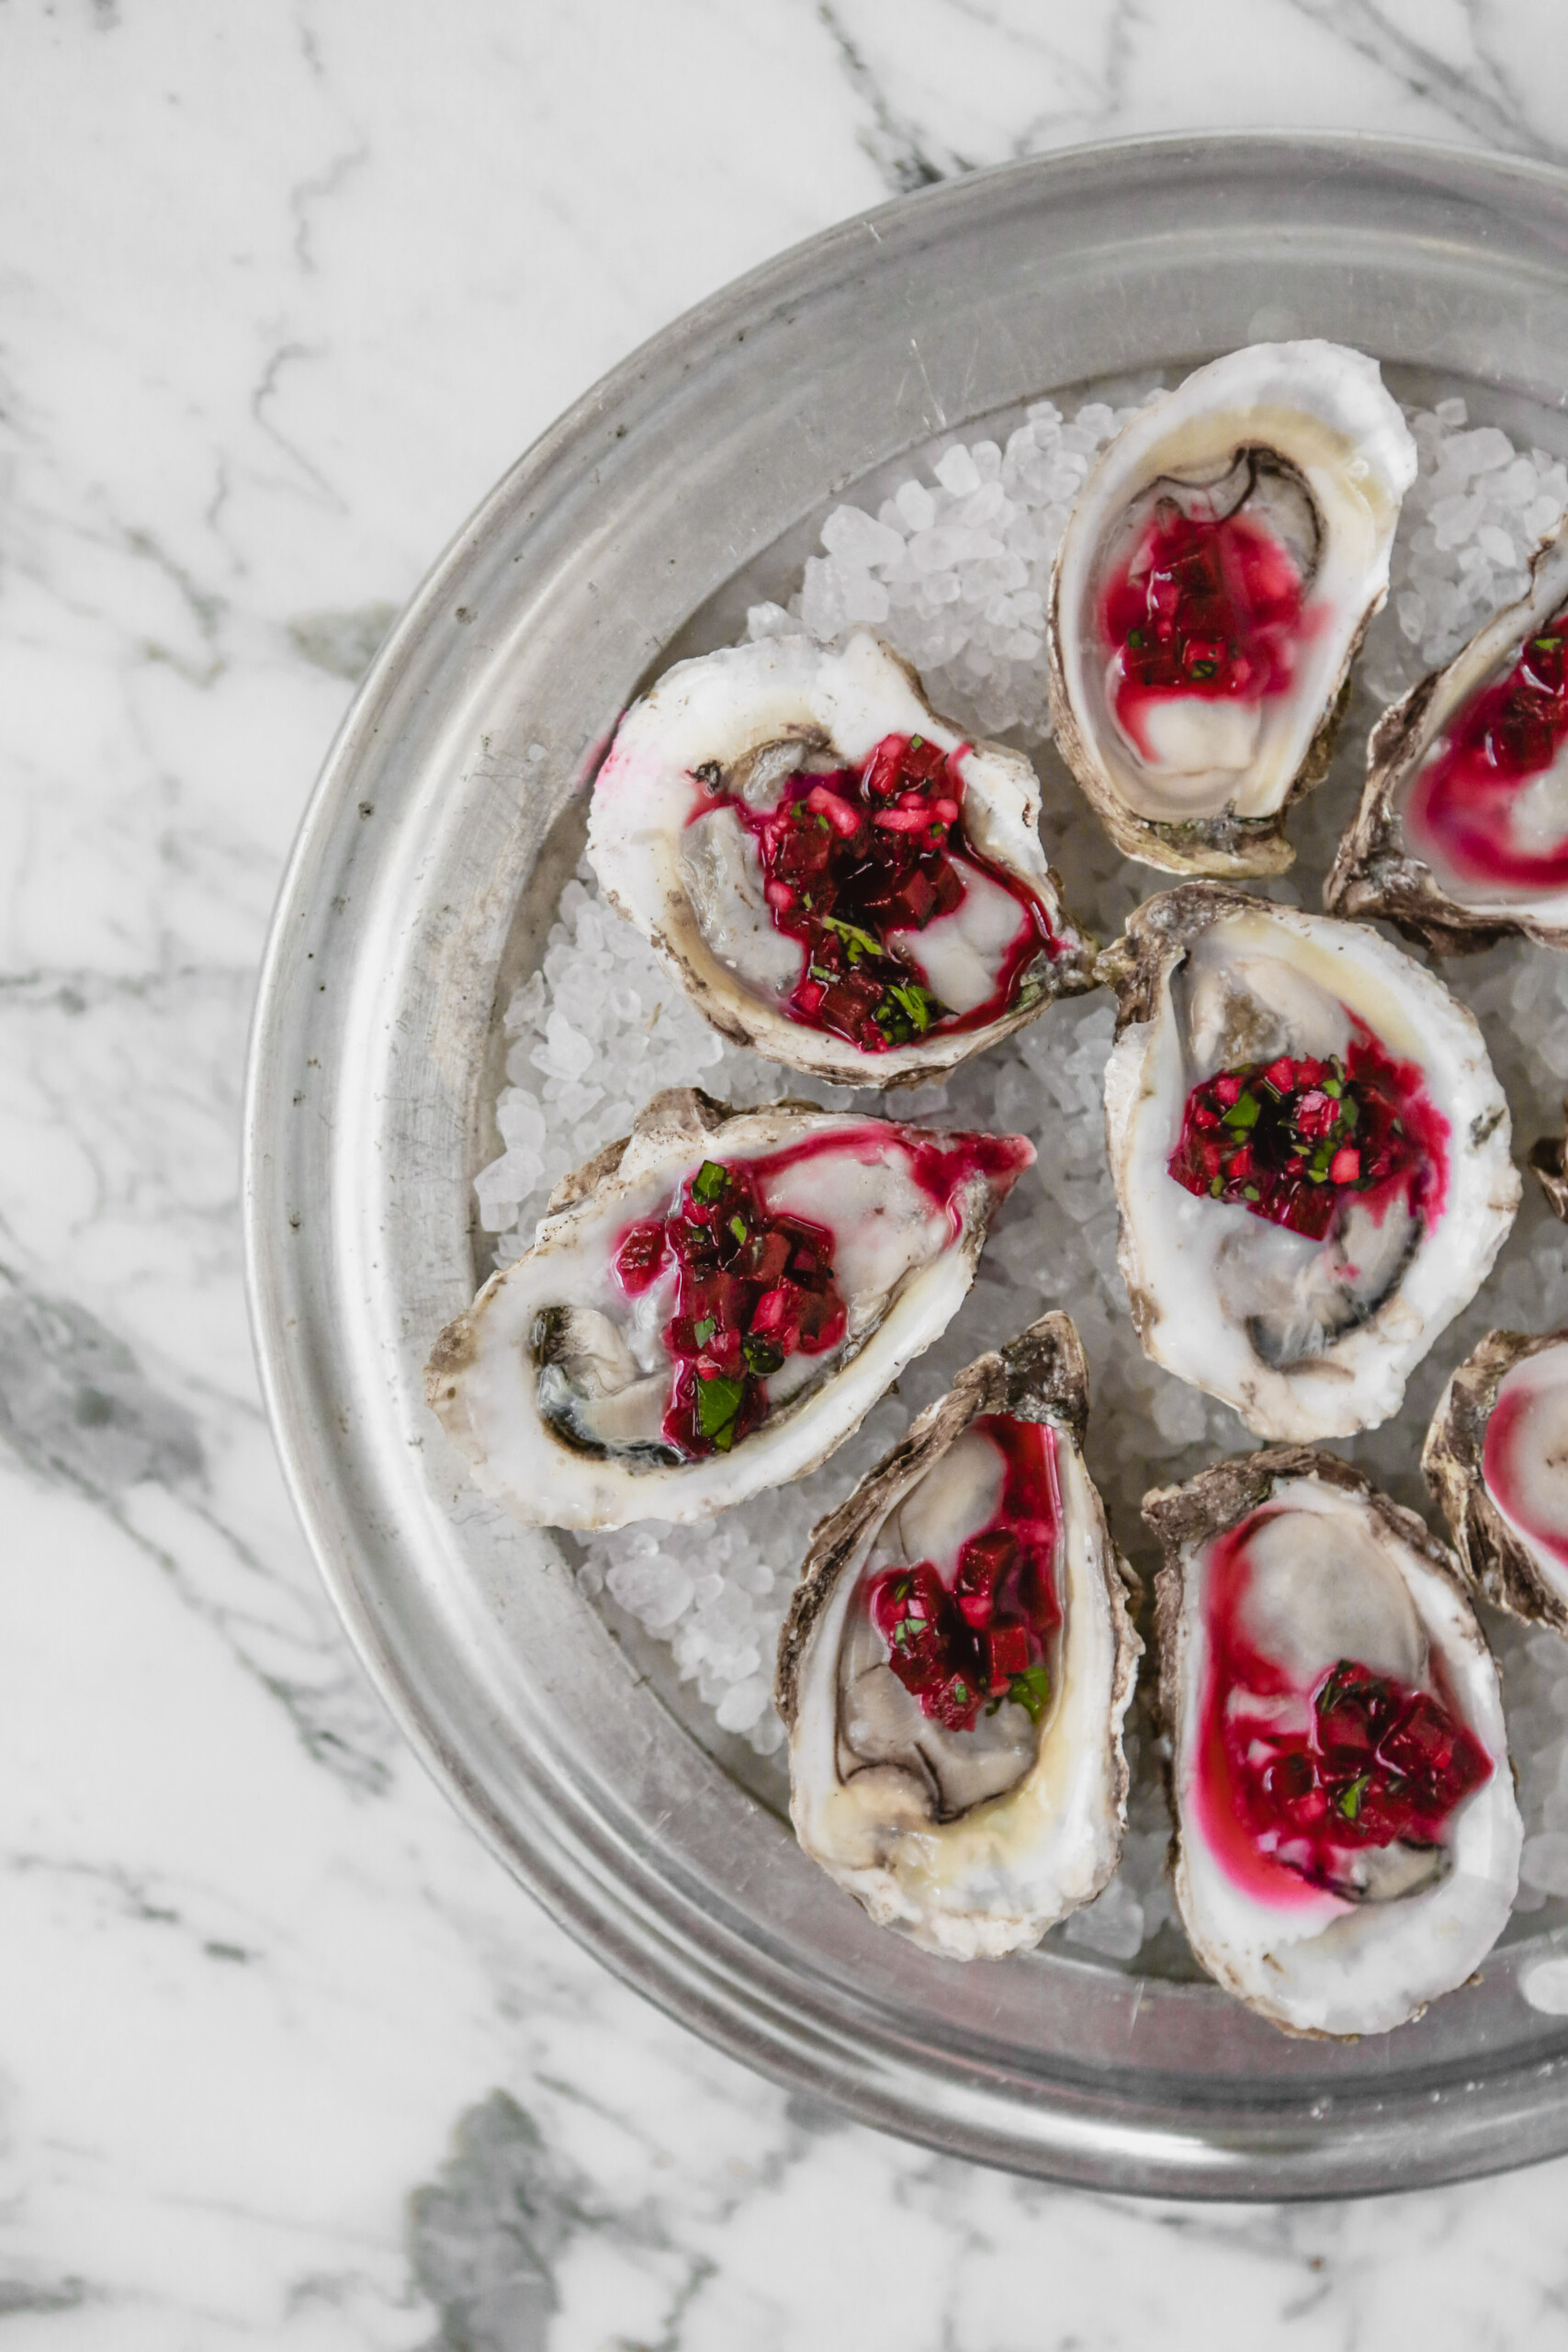 Photograph of oysters on the half shell set on rock salt in a metal pan on a marble surface, topped with a red mignonette sauce.